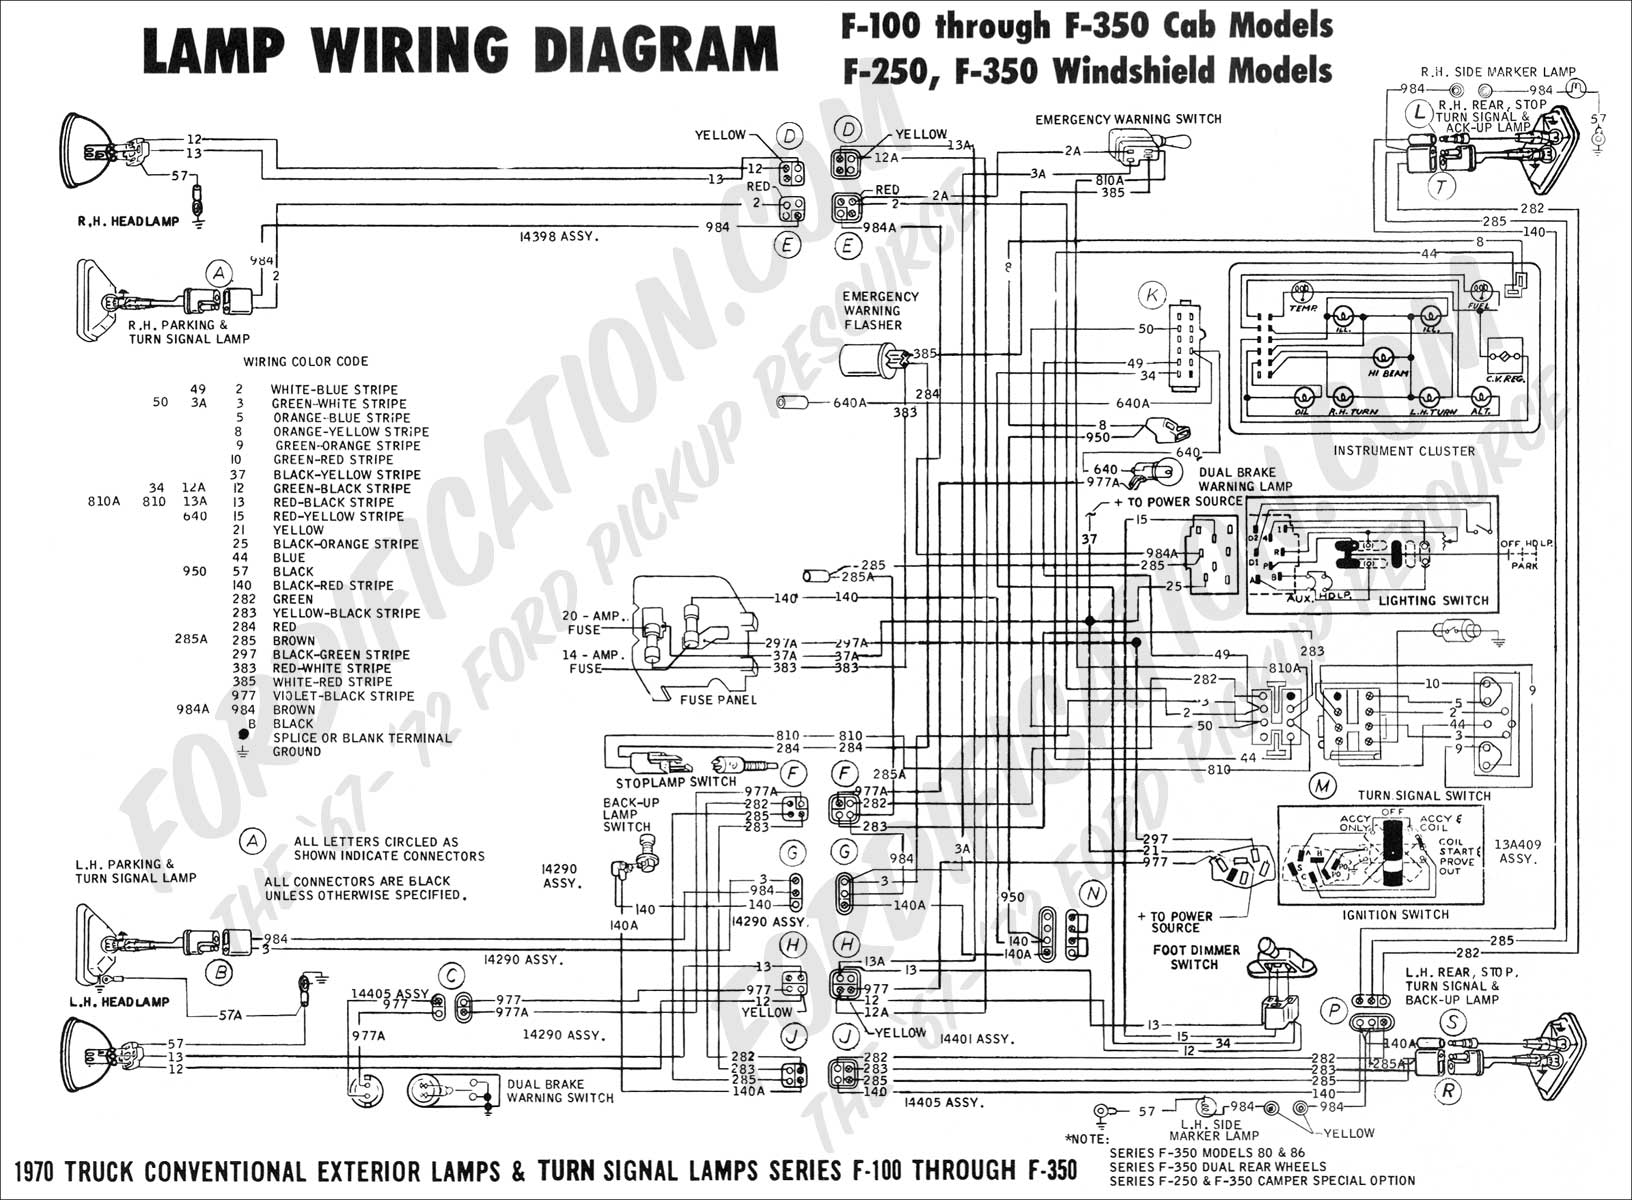 wiring diagram_70ext lights01 ford truck technical drawings and schematics section h wiring ford f 250 wiring diagram at bakdesigns.co